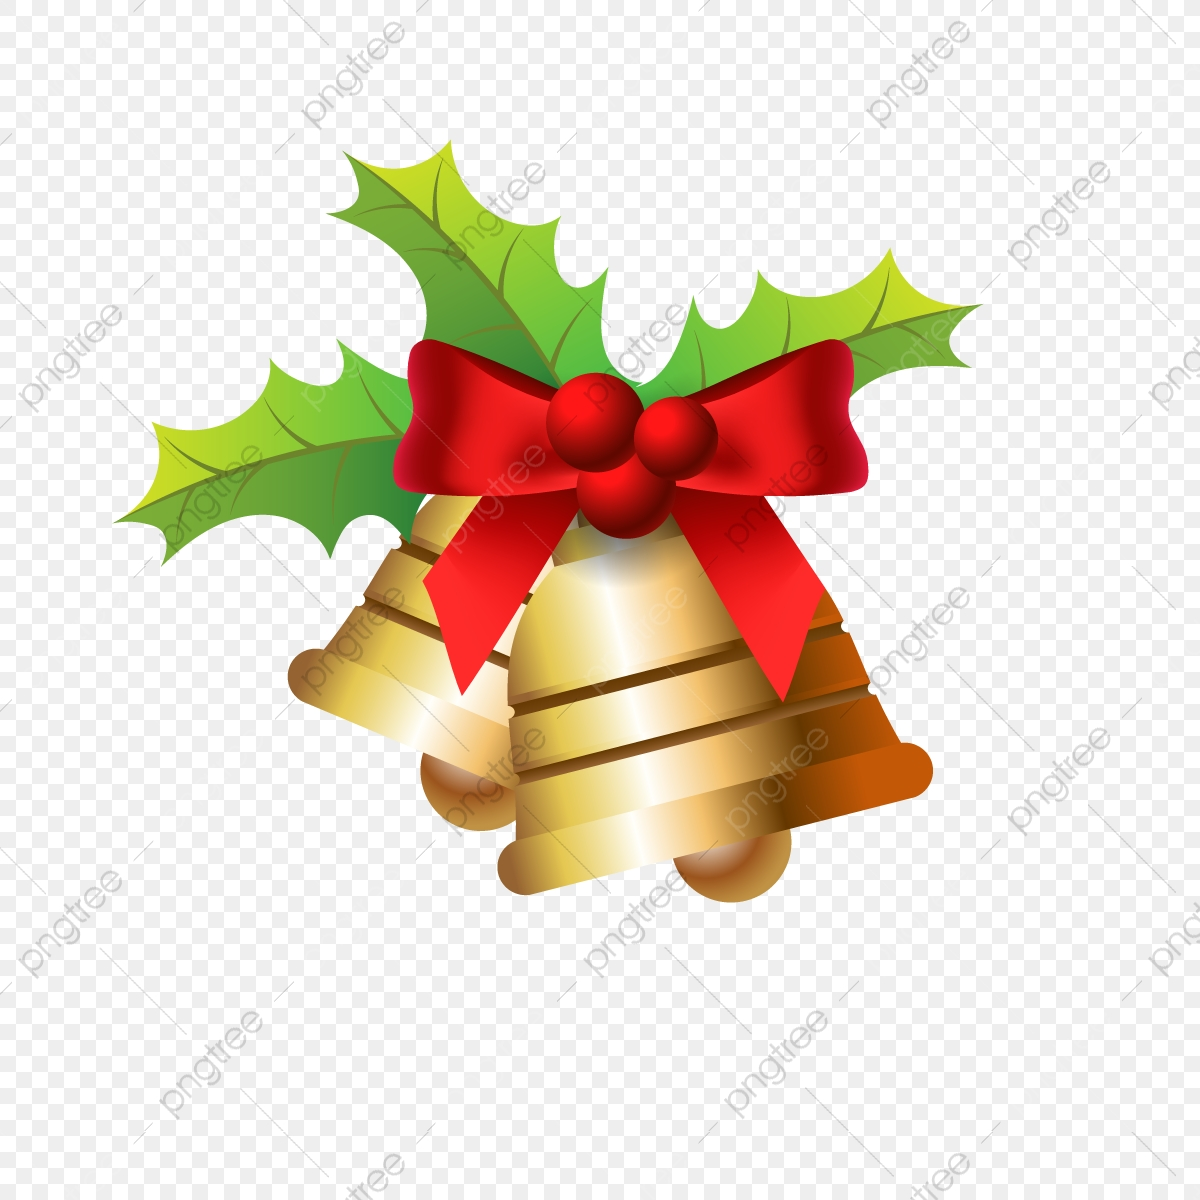 Golden Christmas Bells Christmas Background Decoration